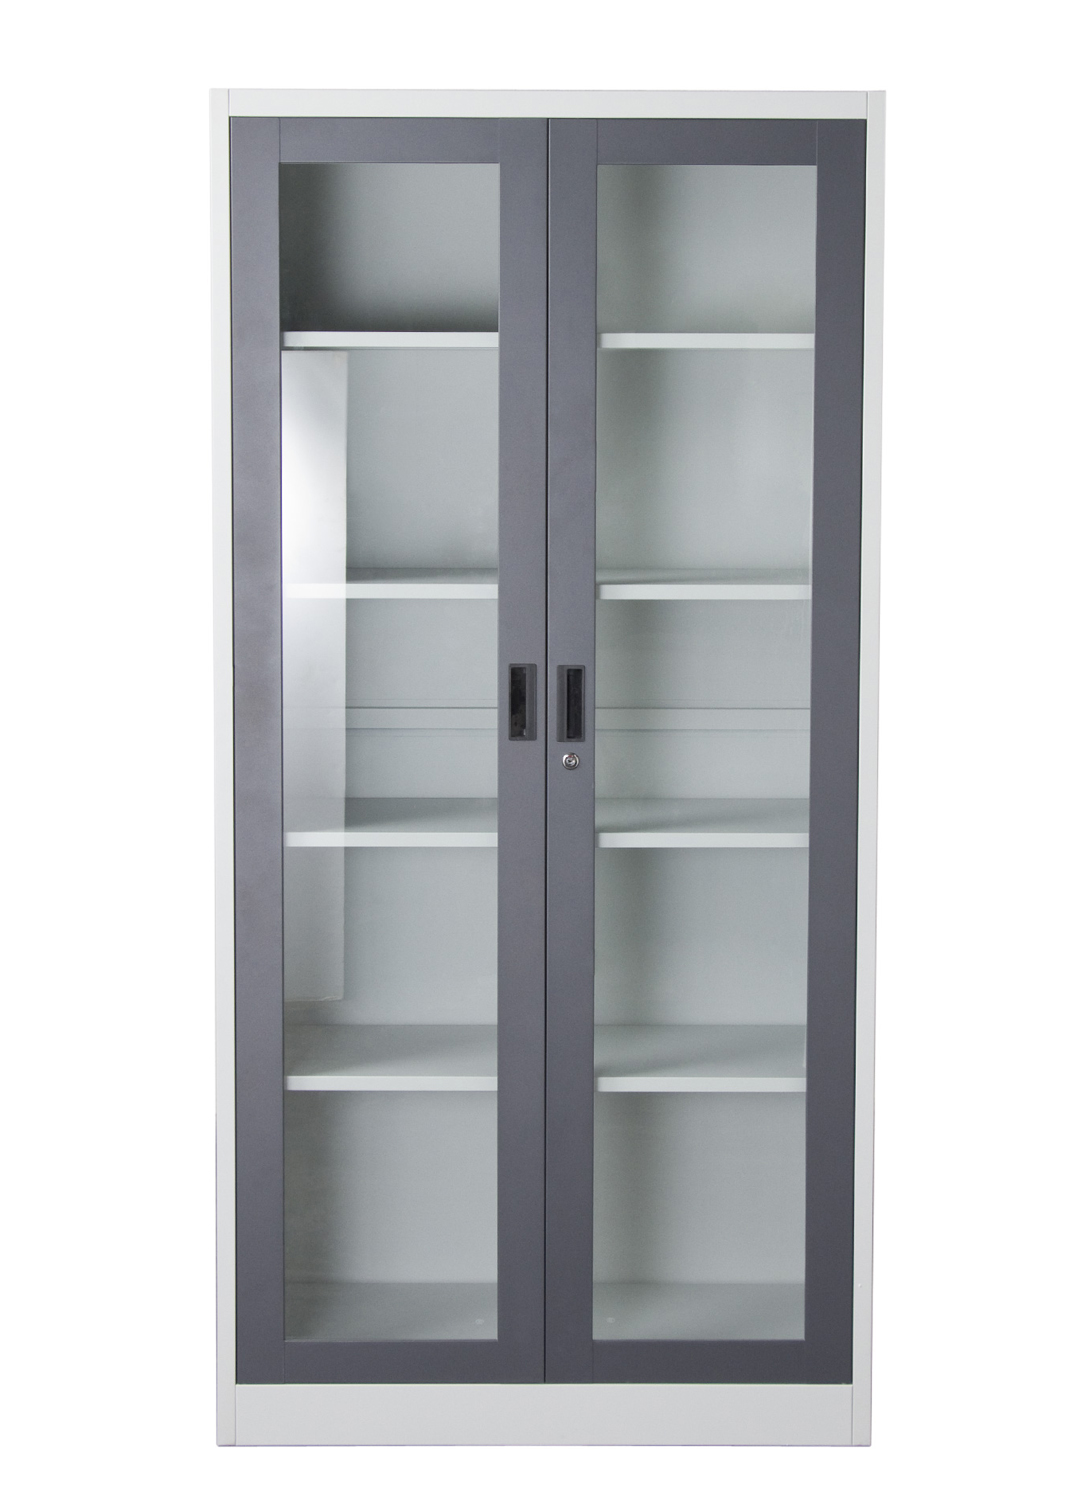 Images of Nova Qwik 2-Door 5-Shelf Bookcase with Tempered Glass Door Front in Grey 2 shelf bookcase with glass doors